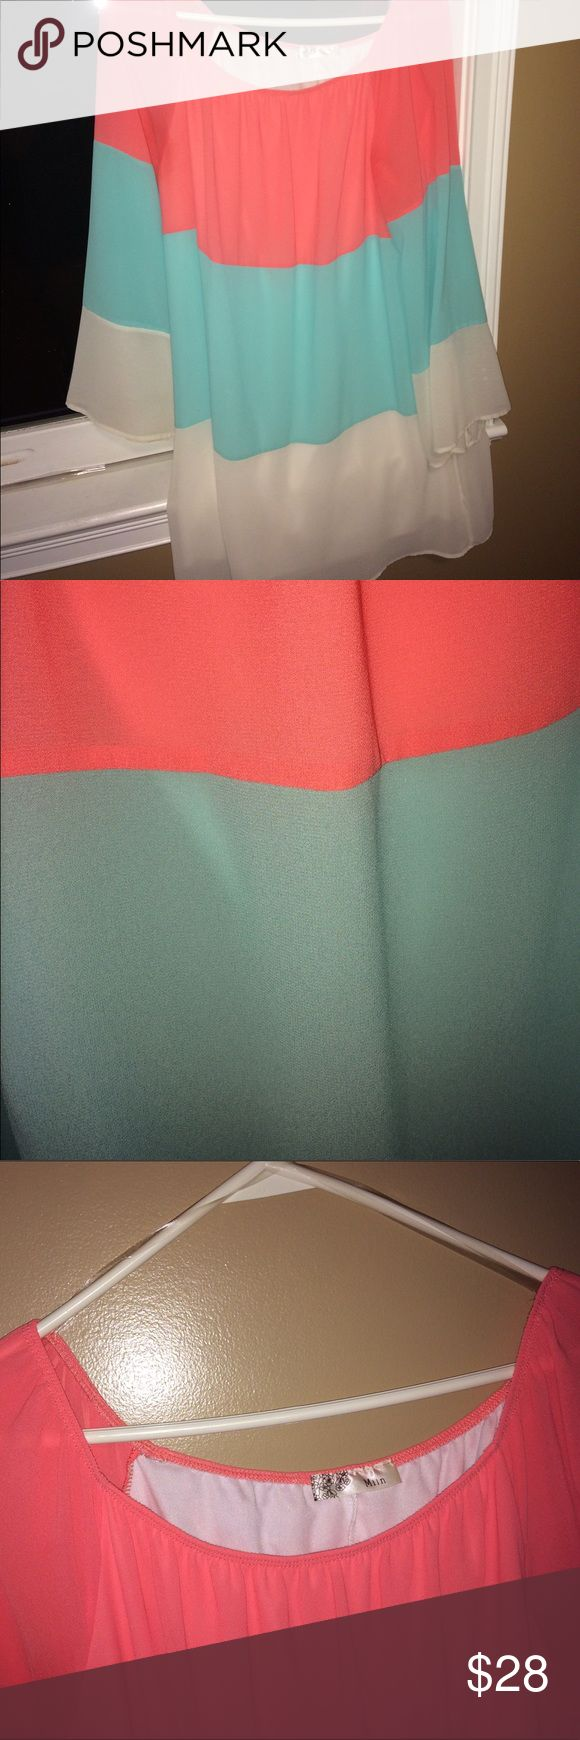 Three toned flowing blouse Coral, turquoise, and white full length sleeves Blouse perfect for a brunch or day out. Very comfortable and stylish. Perfect for more mature ladies. Hardly worn, still in great condition, no flaws or discoloration etc. 100% polyester. Miin Tops Blouses